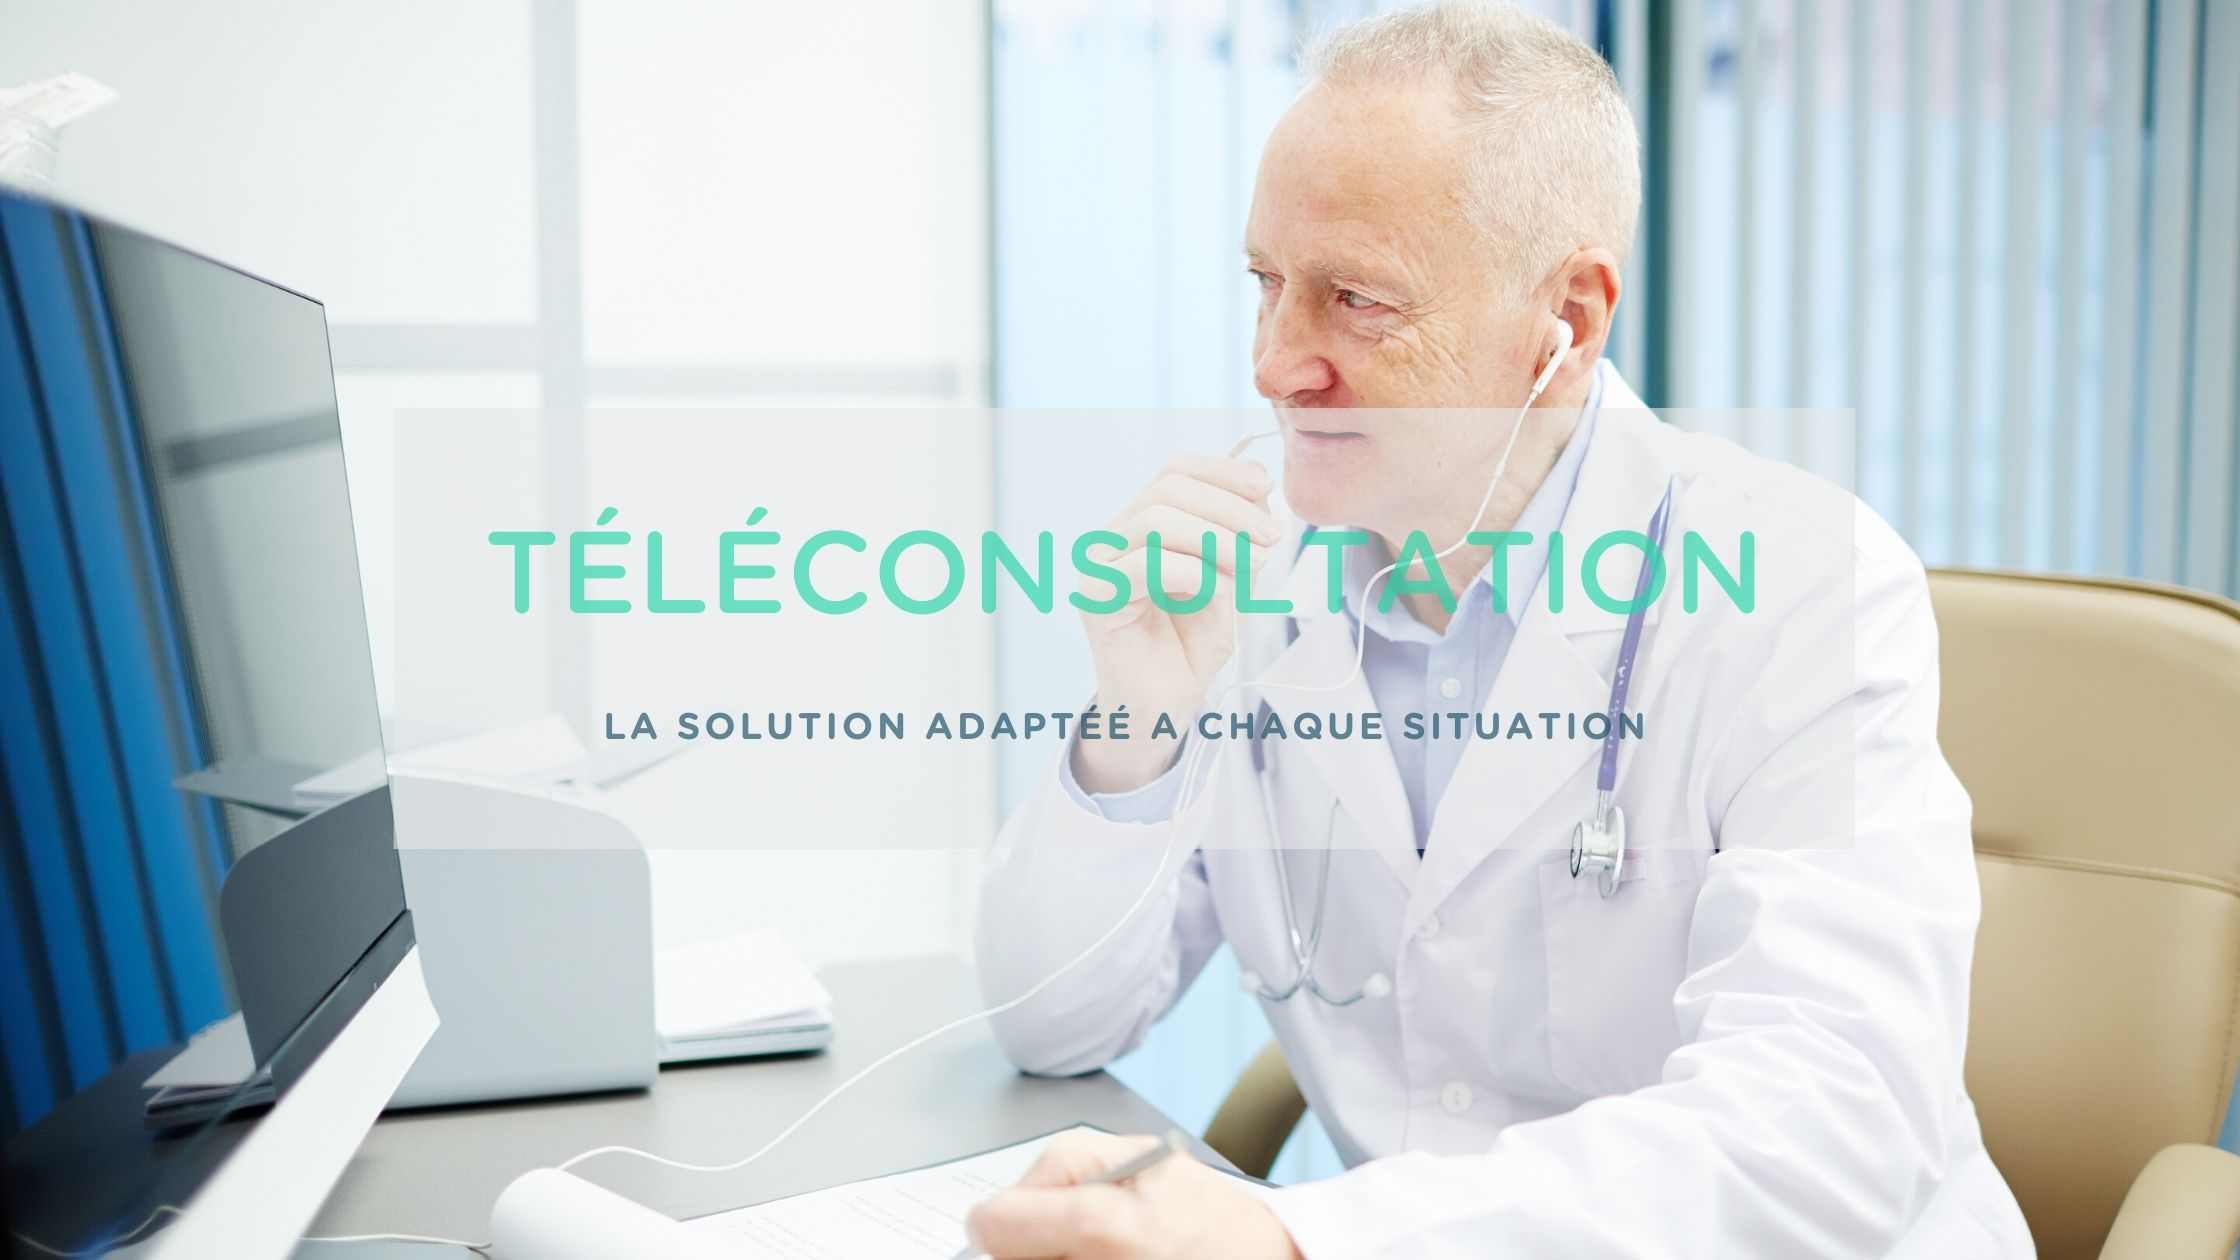 usage teleconsultation patients